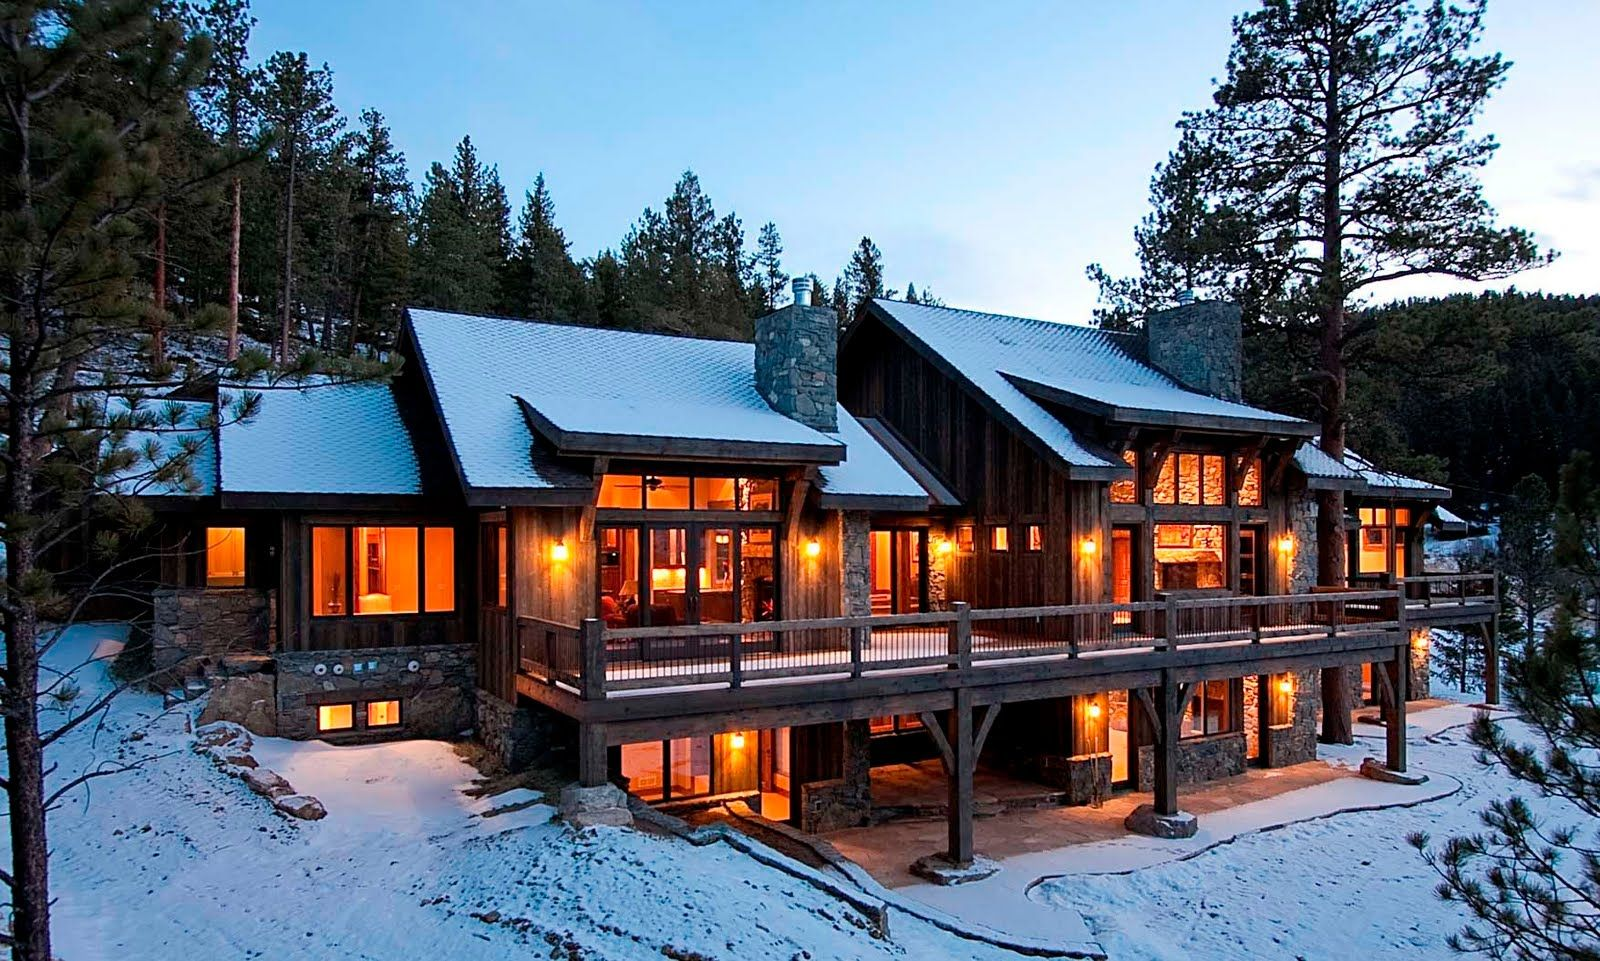 Tkp architects pc tkp design wins best in american living for Mountain home architects